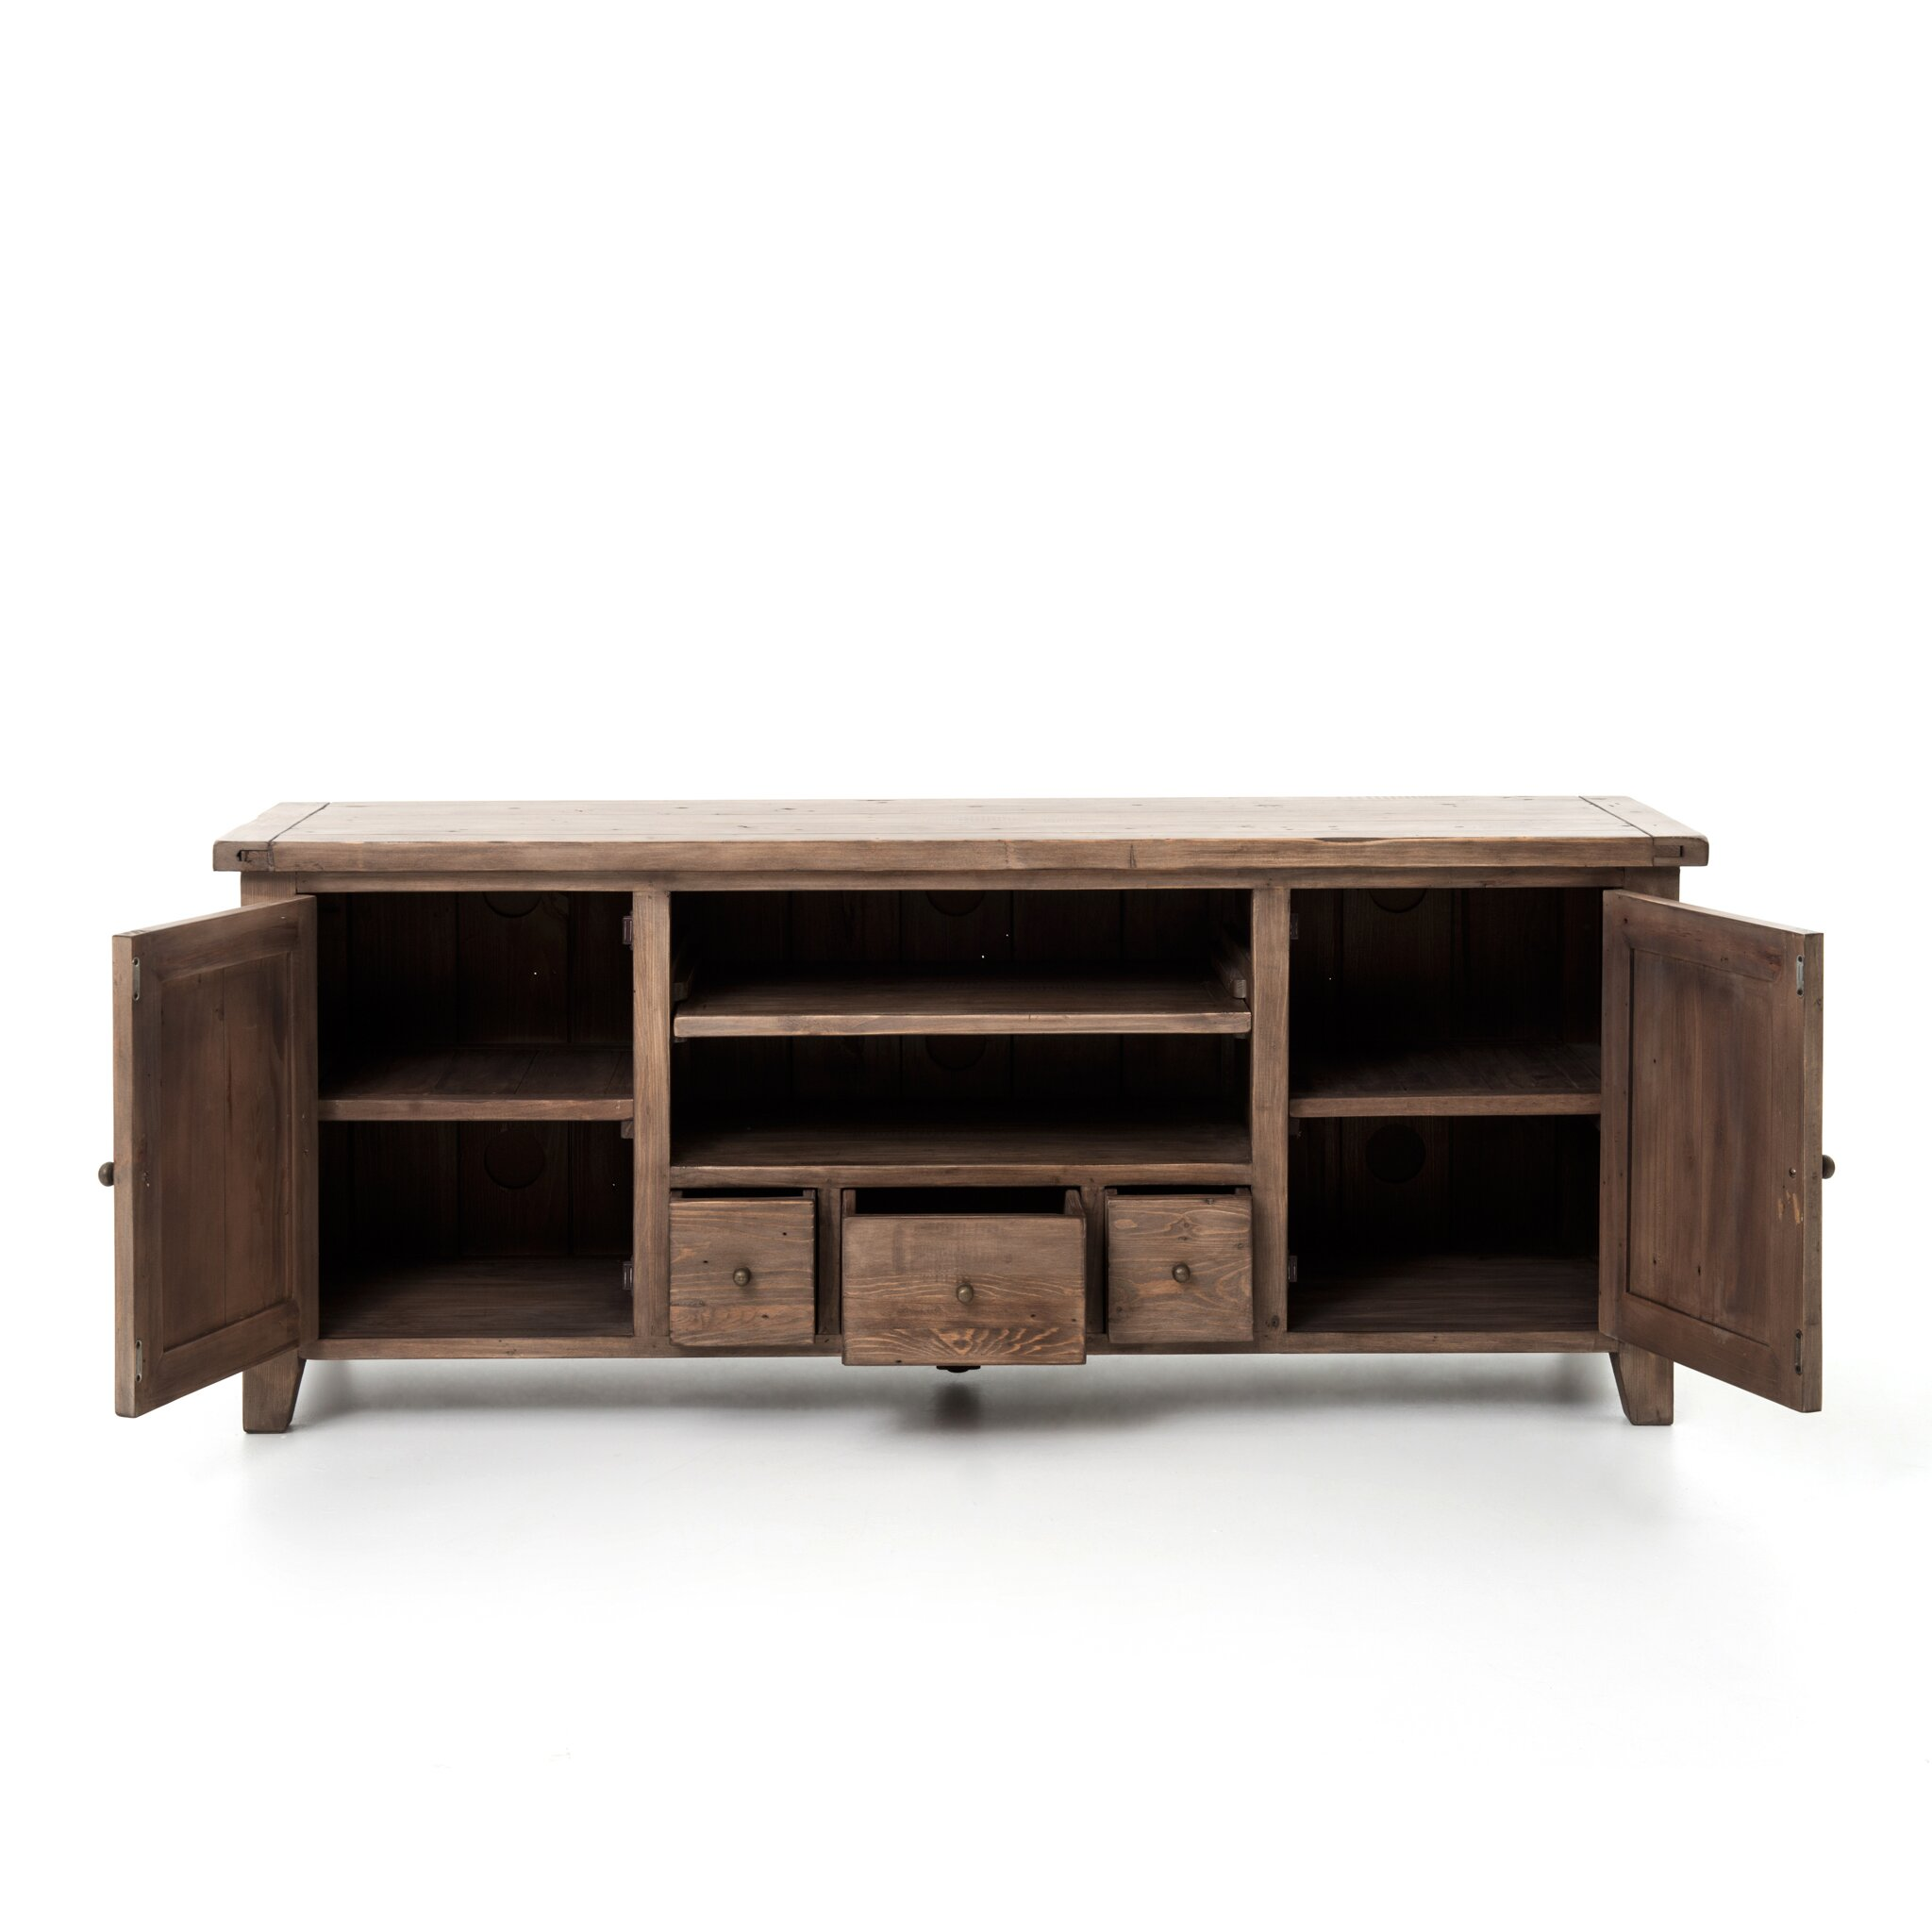 19 Wayfair Modern Dining Room Sets Real Flame  : Abbot TV Stand from otadogguide.com size 2048 x 2048 jpeg 275kB